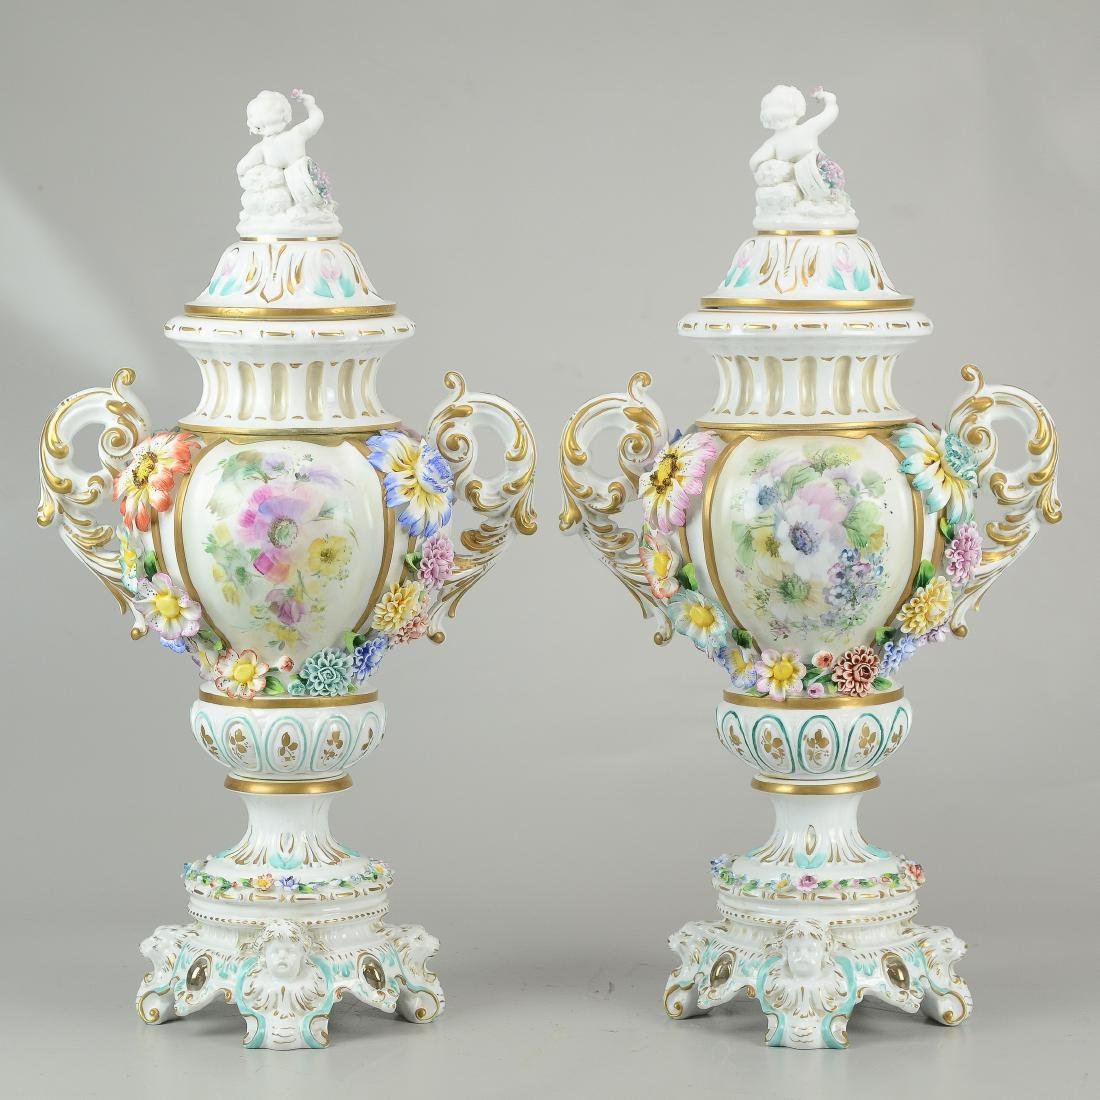 """Pr Tiche porcelain covered urns, made in Italy, 22-1/2"""" - 2"""